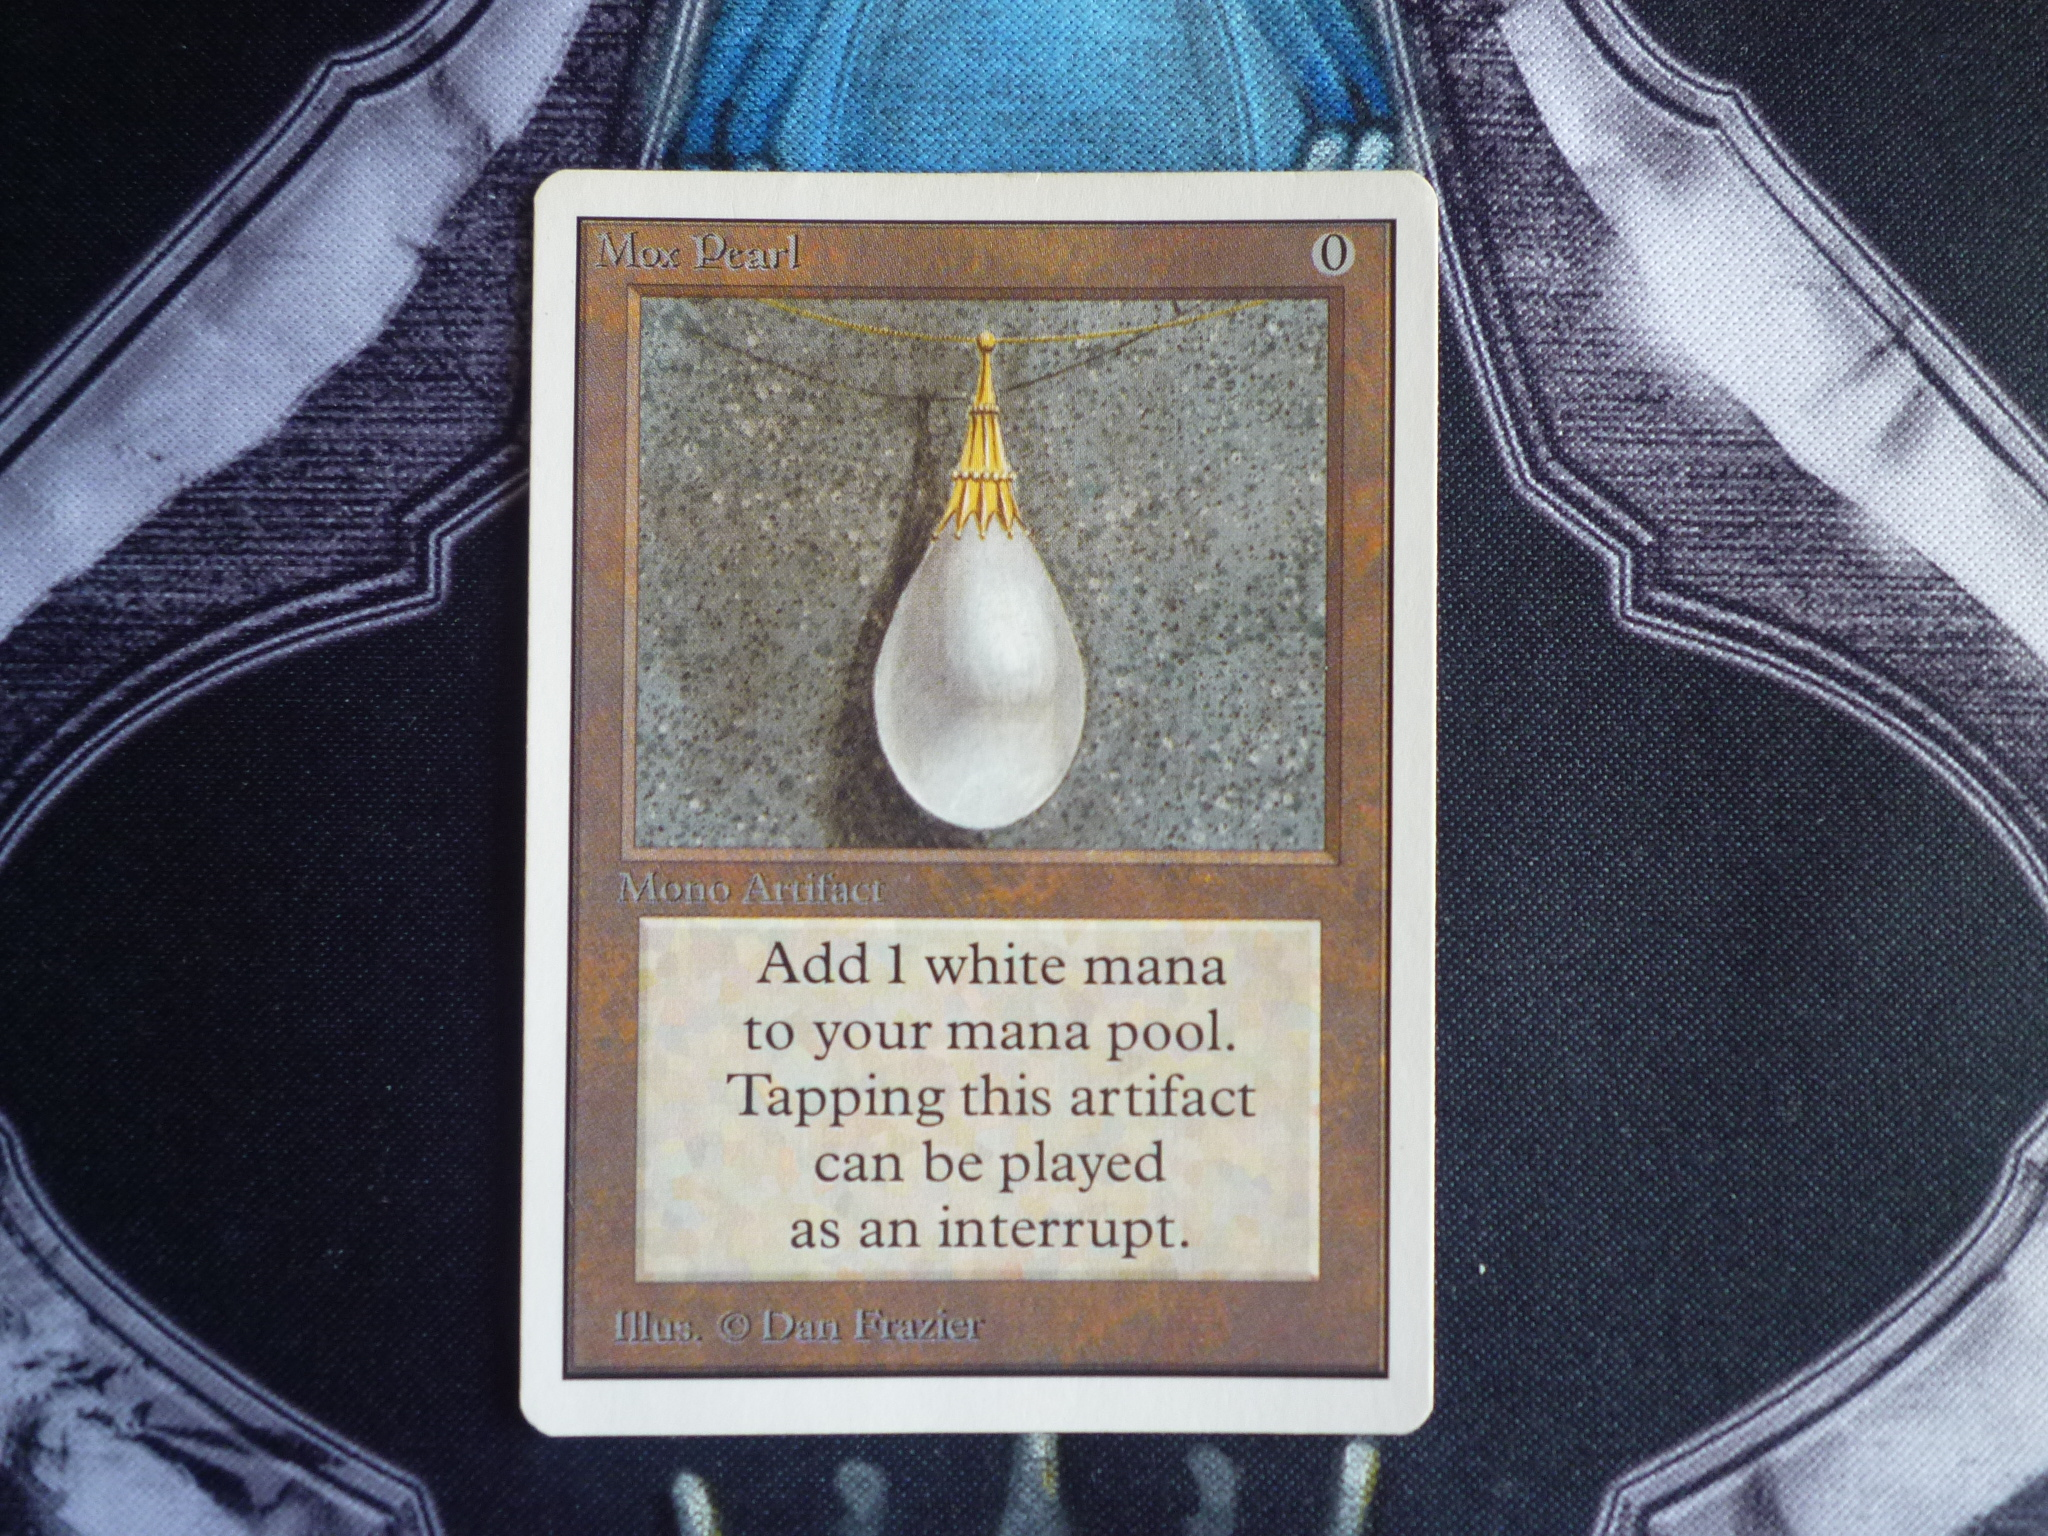 Mox pearl front